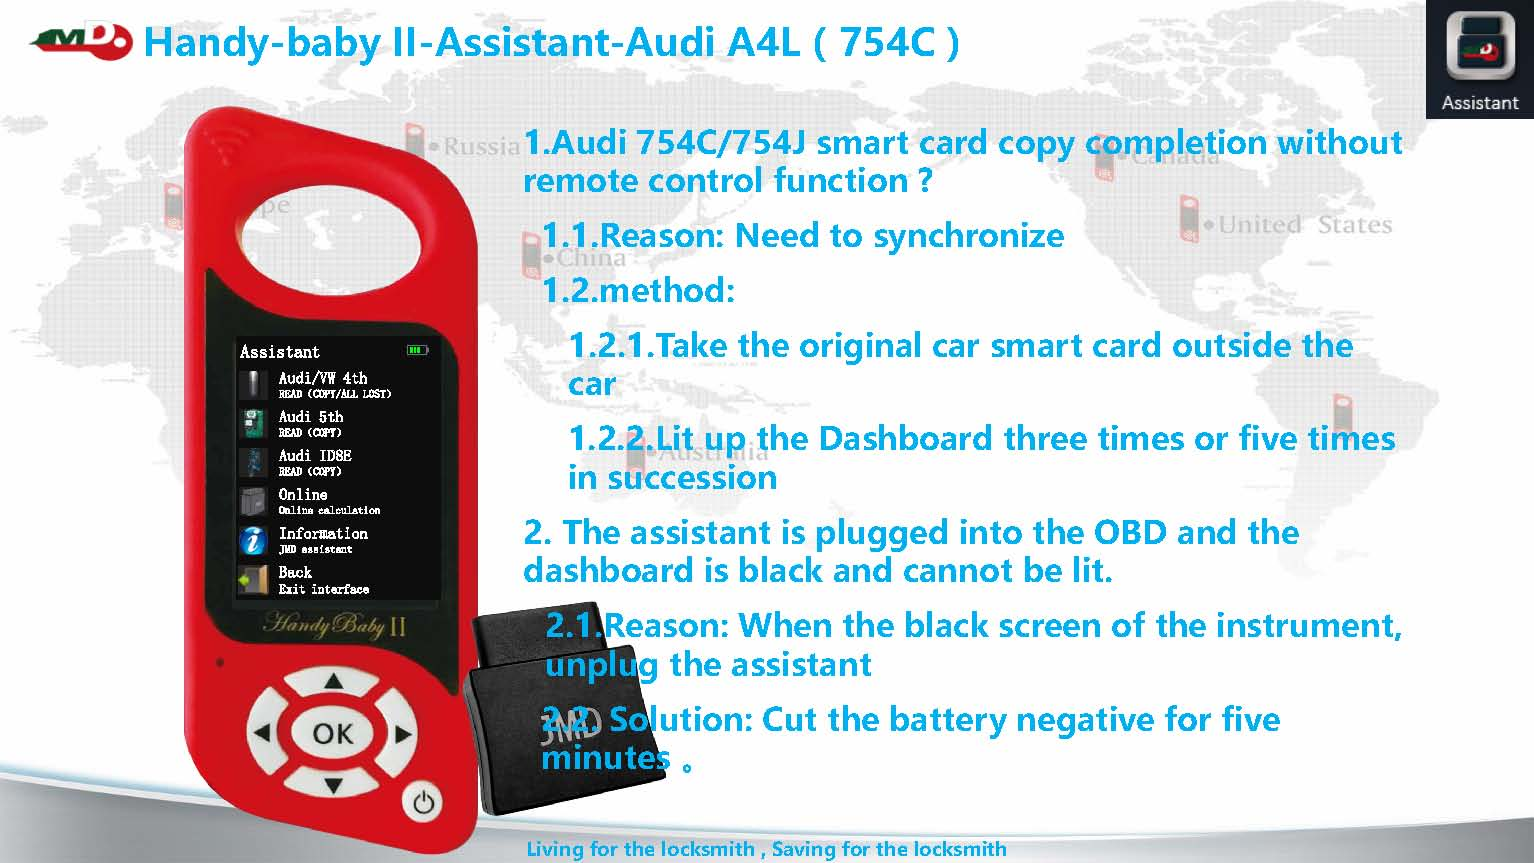 jmd-handy-baby-2-and -jmd-assistant-guide-06